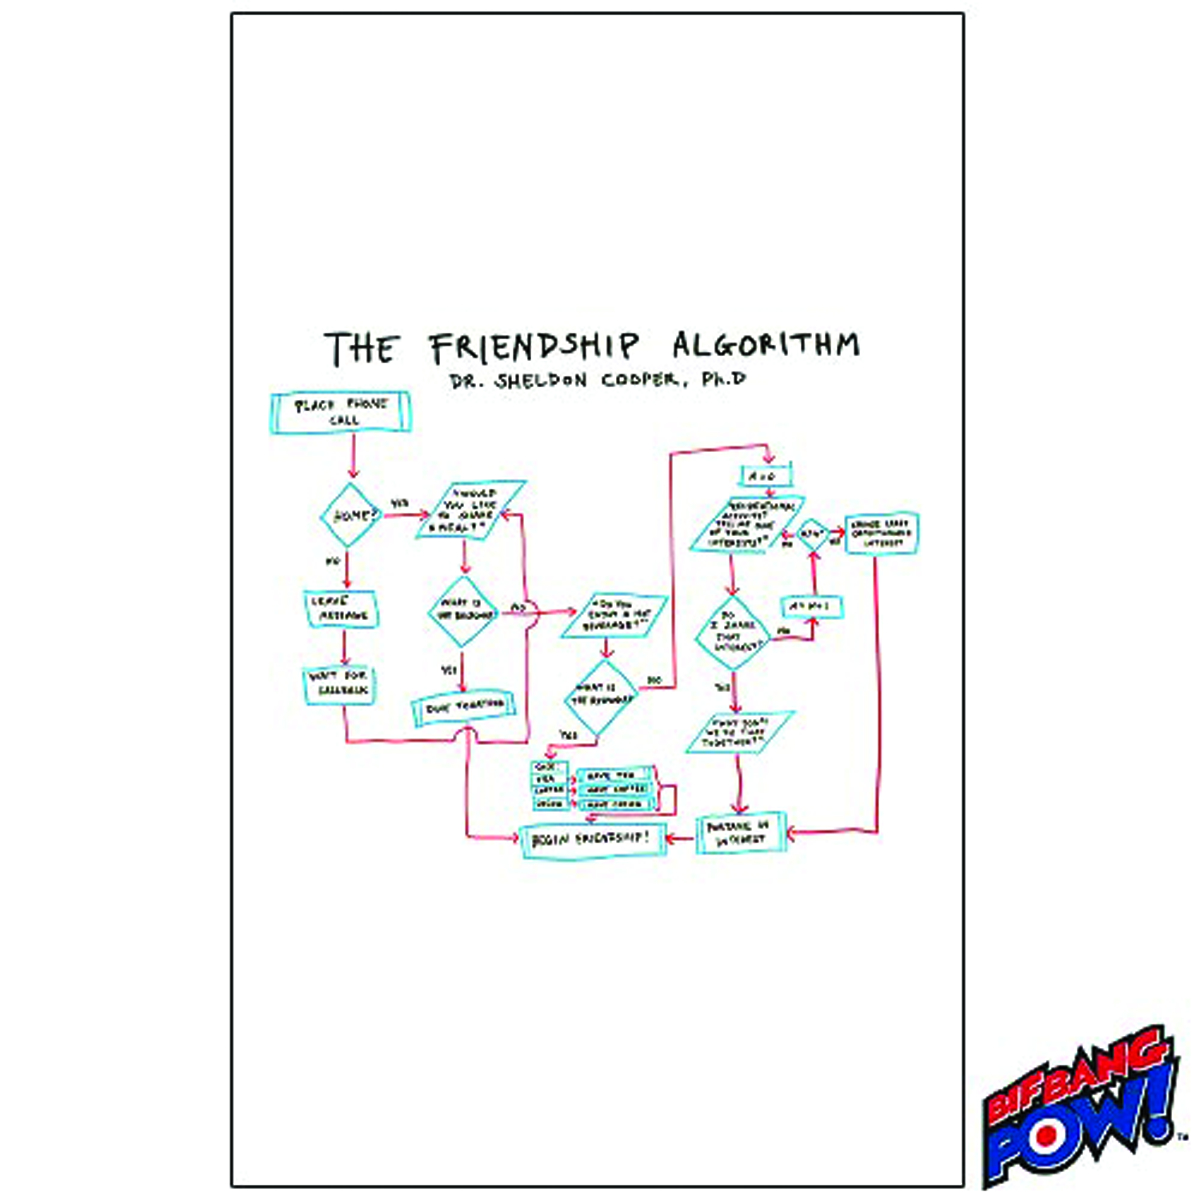 BIG BANG THEORY FRIENDSHIP ALGORITHM JOURNAL